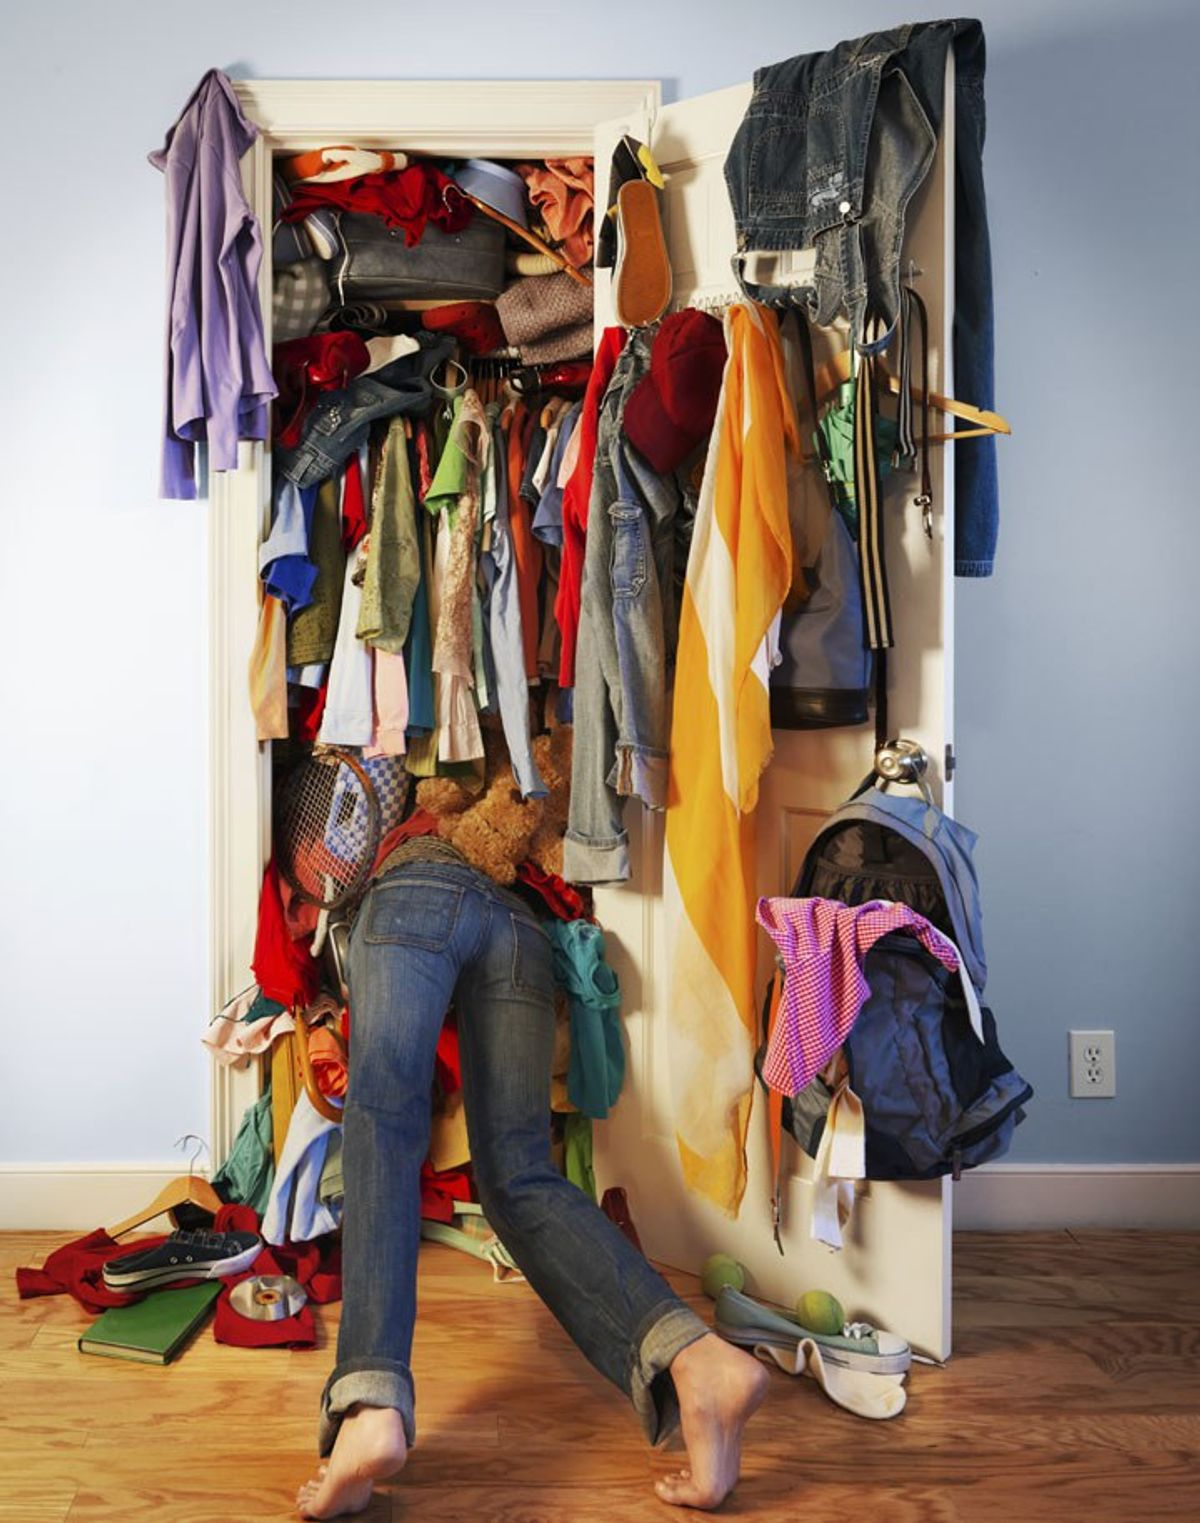 Cleaning Out Your Metaphorical Closet